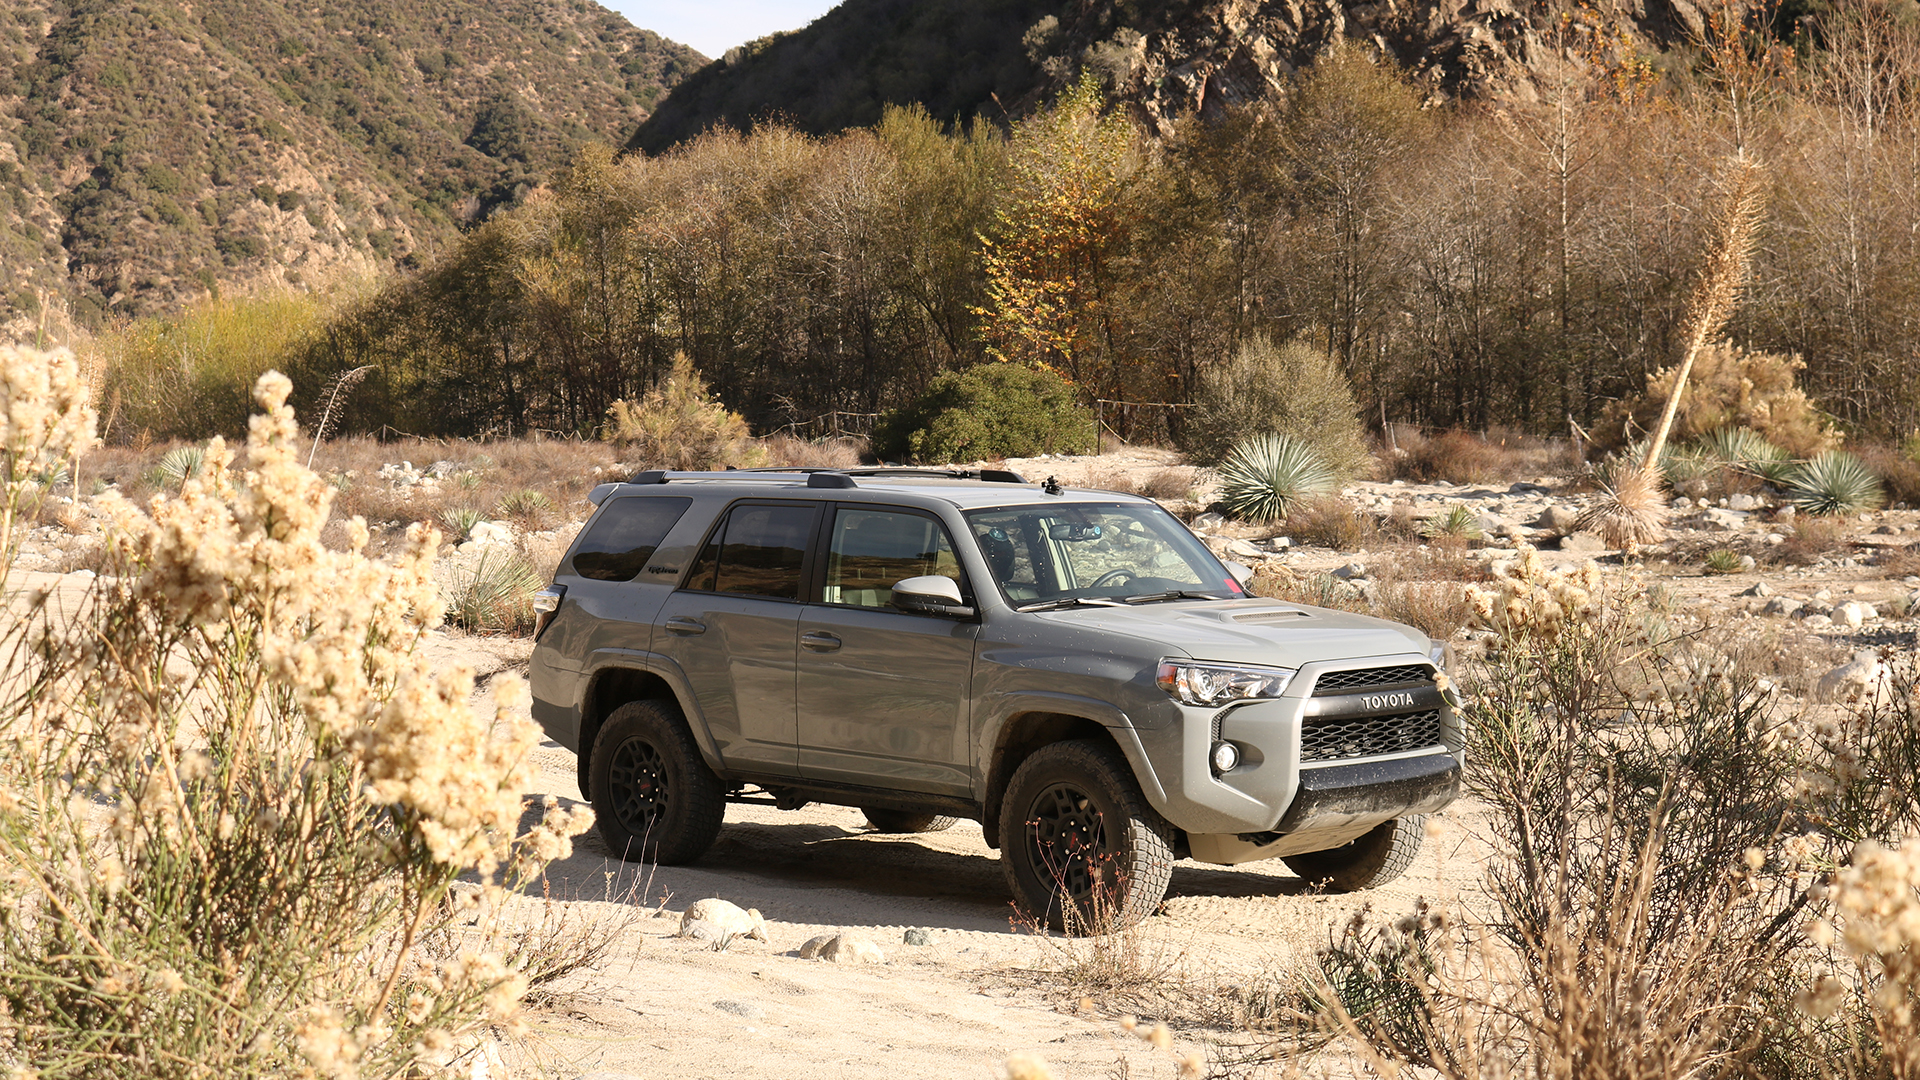 4runner Off Road >> 2017 Toyota 4runner Trd Pro Review Old School Off Road Goodness